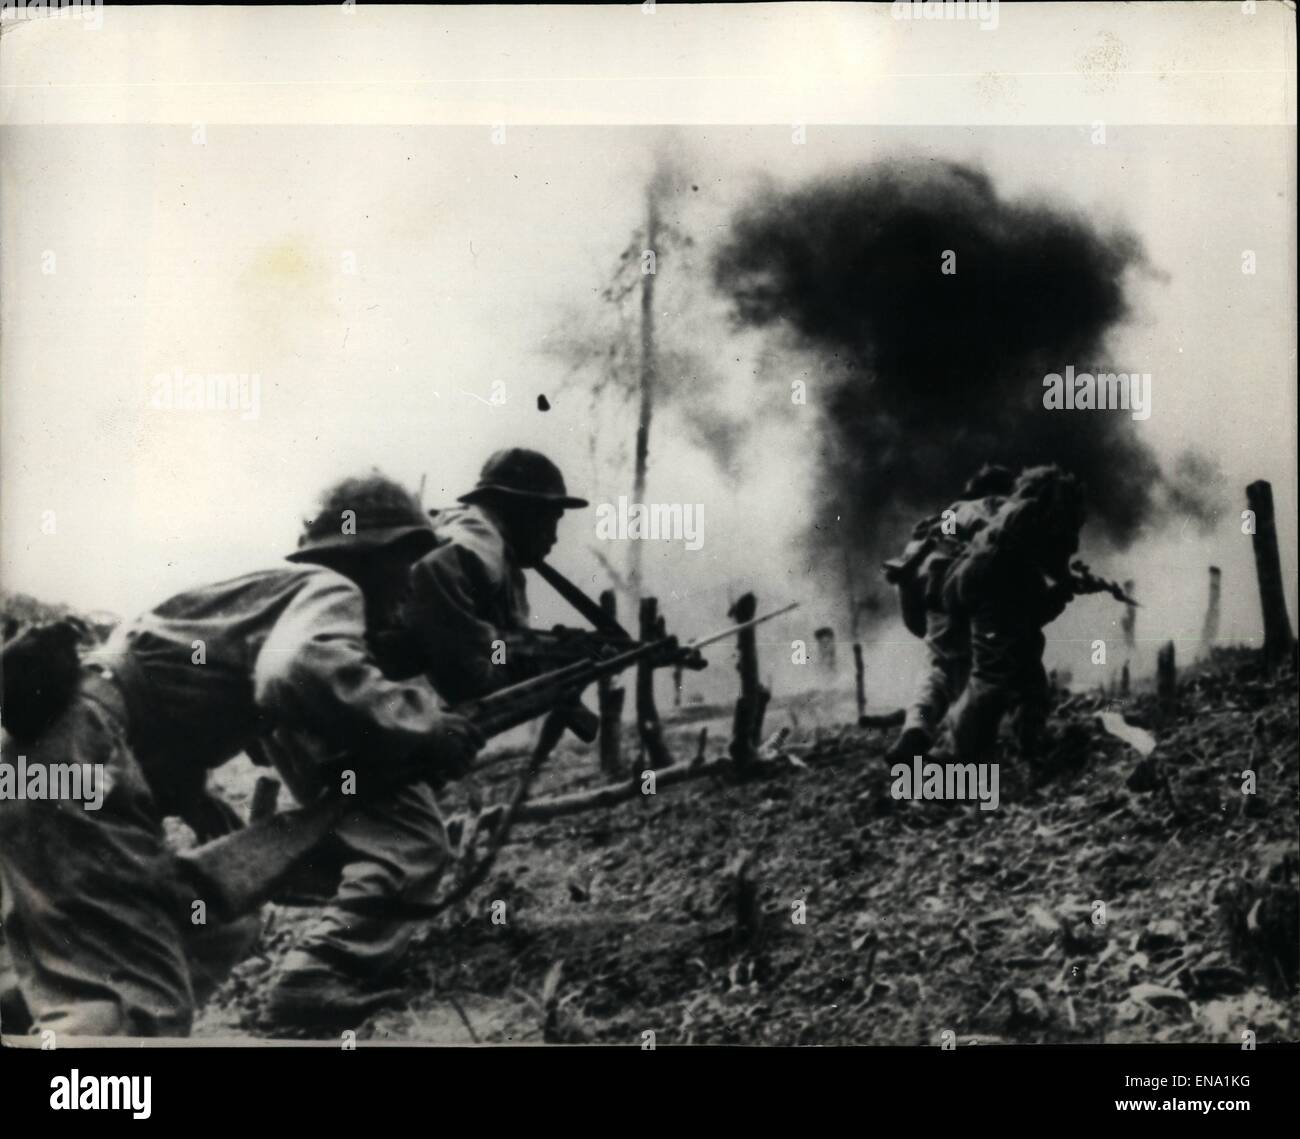 File. 30th Apr, 2015. The Vietnam War, Also Known As The